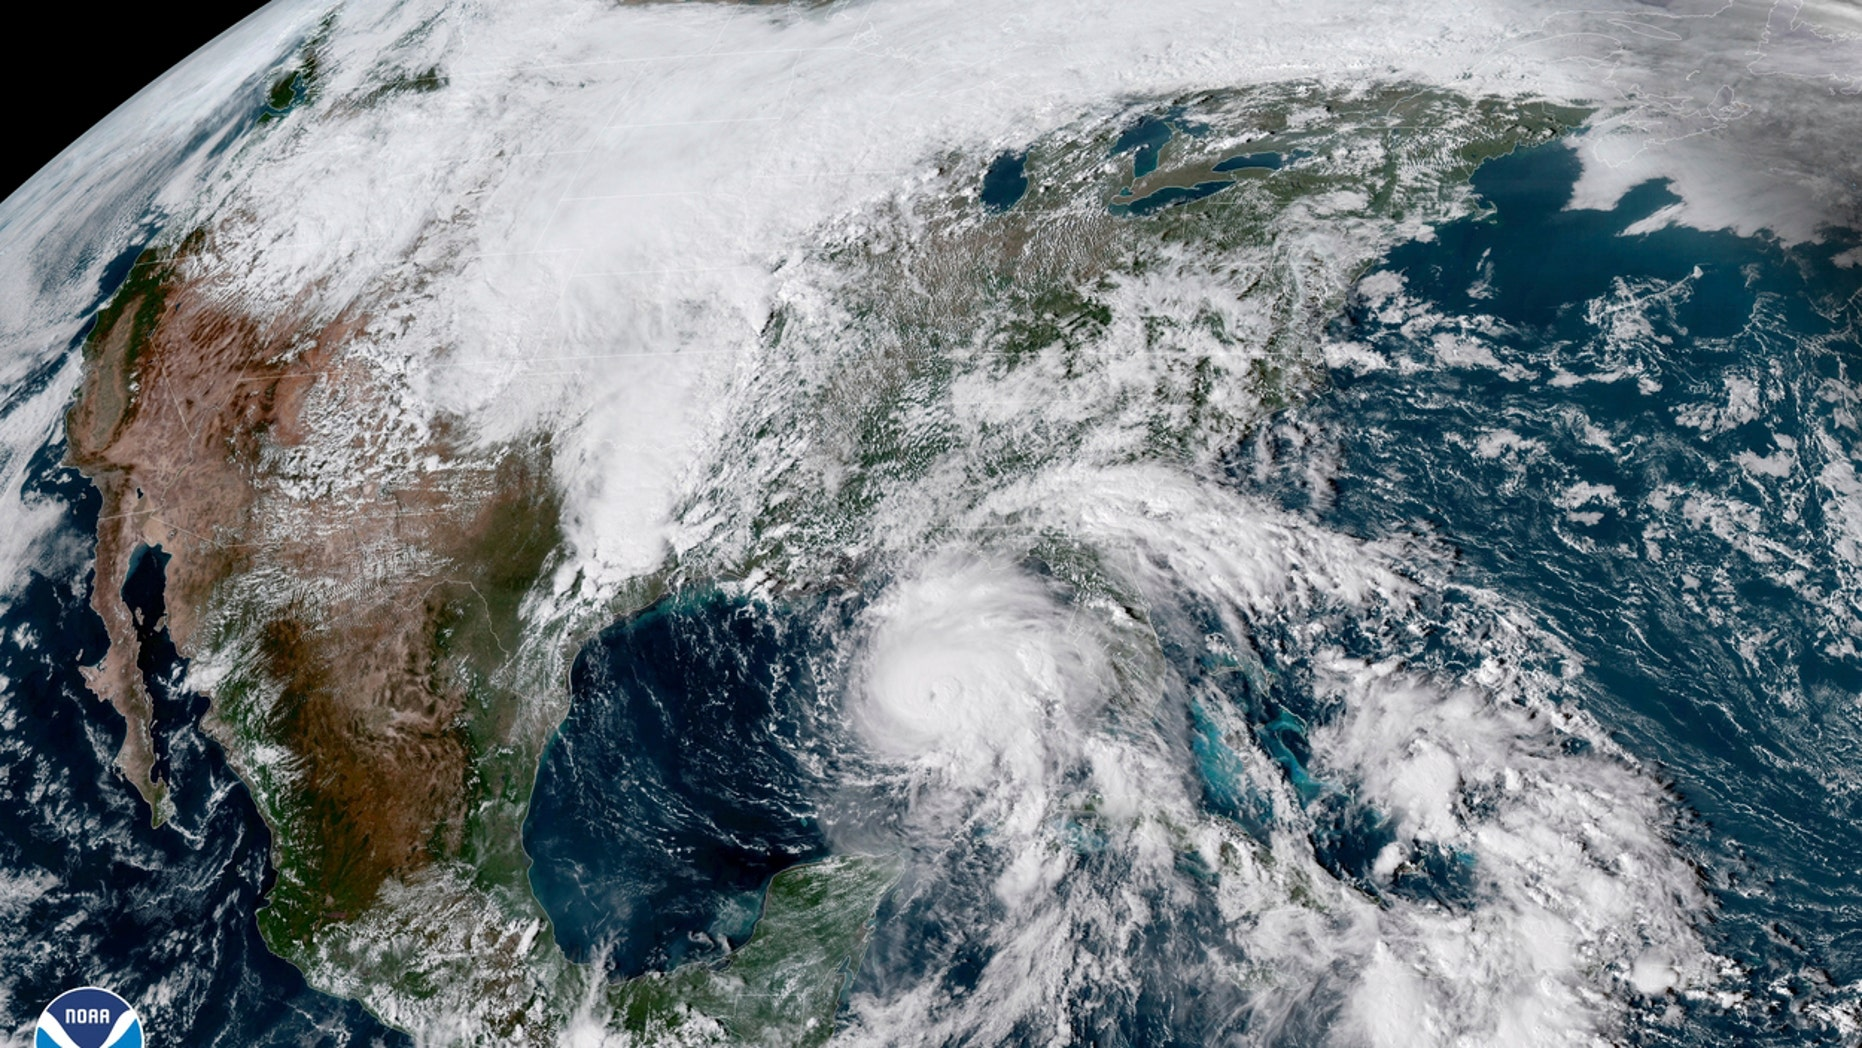 FILE - This Oct. 9, 2018, file photo shows a satellite image made available by NOAA showing Hurricane Michael, center, in the Gulf of Mexico. Hundreds of residents in the county hardest hit by Hurricane Michael are losing housing vouchers that allowed them to stay at hotels in the aftermath of the Category 4 storm. Around 250 households in Bay County, Florida, are facing eviction from hotels Tuesday, April 9, 2019 since their vouchers from the Federal Emergency Management Agency's Transitional Sheltering Assistance program were ending. (NOAA via AP, File)